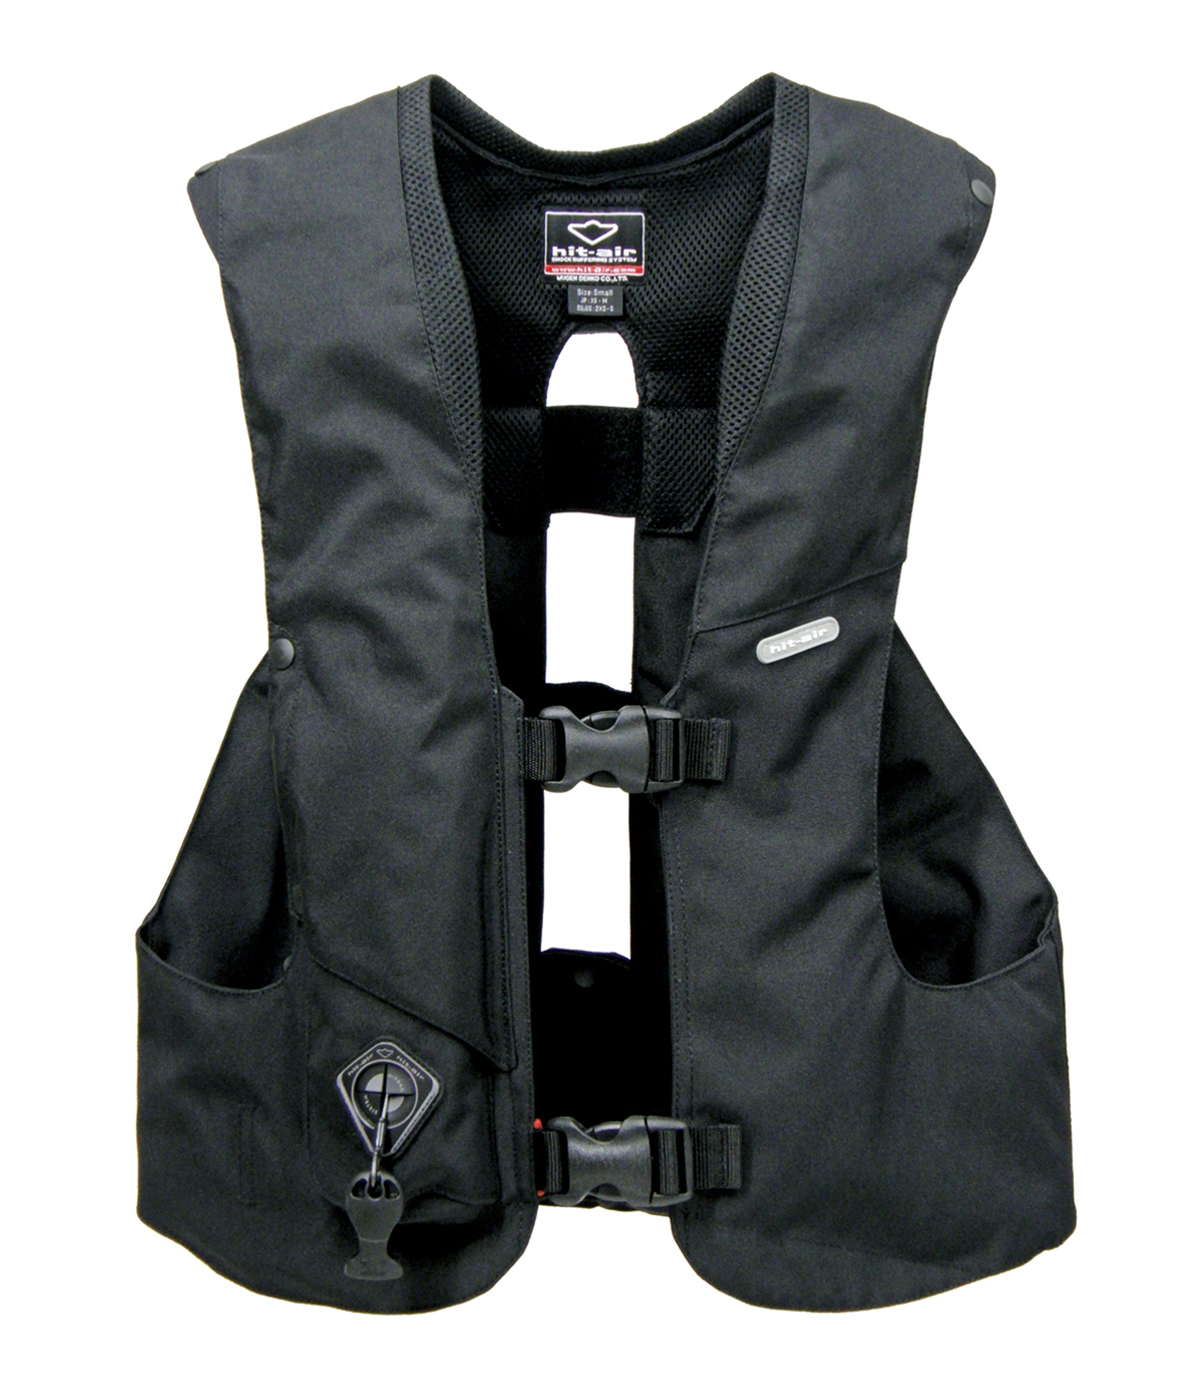 hit air horse riding vest with airbag. Black Bedroom Furniture Sets. Home Design Ideas